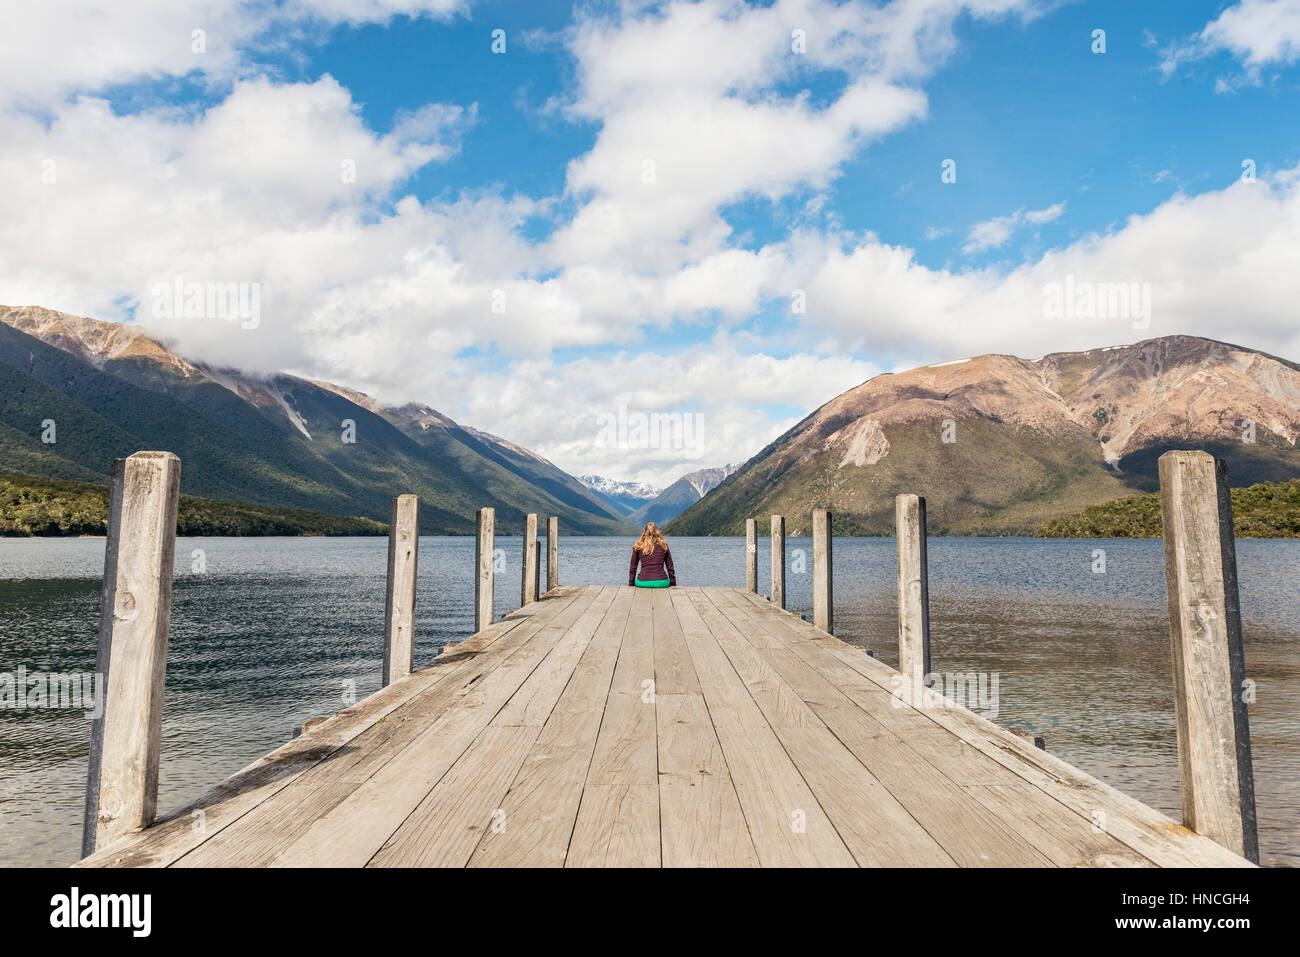 Woman sitting on dock, view of Lake Rotoiti, Nelson Lakes National Park, Tasman District, Southland, New Zealand - Stock Image